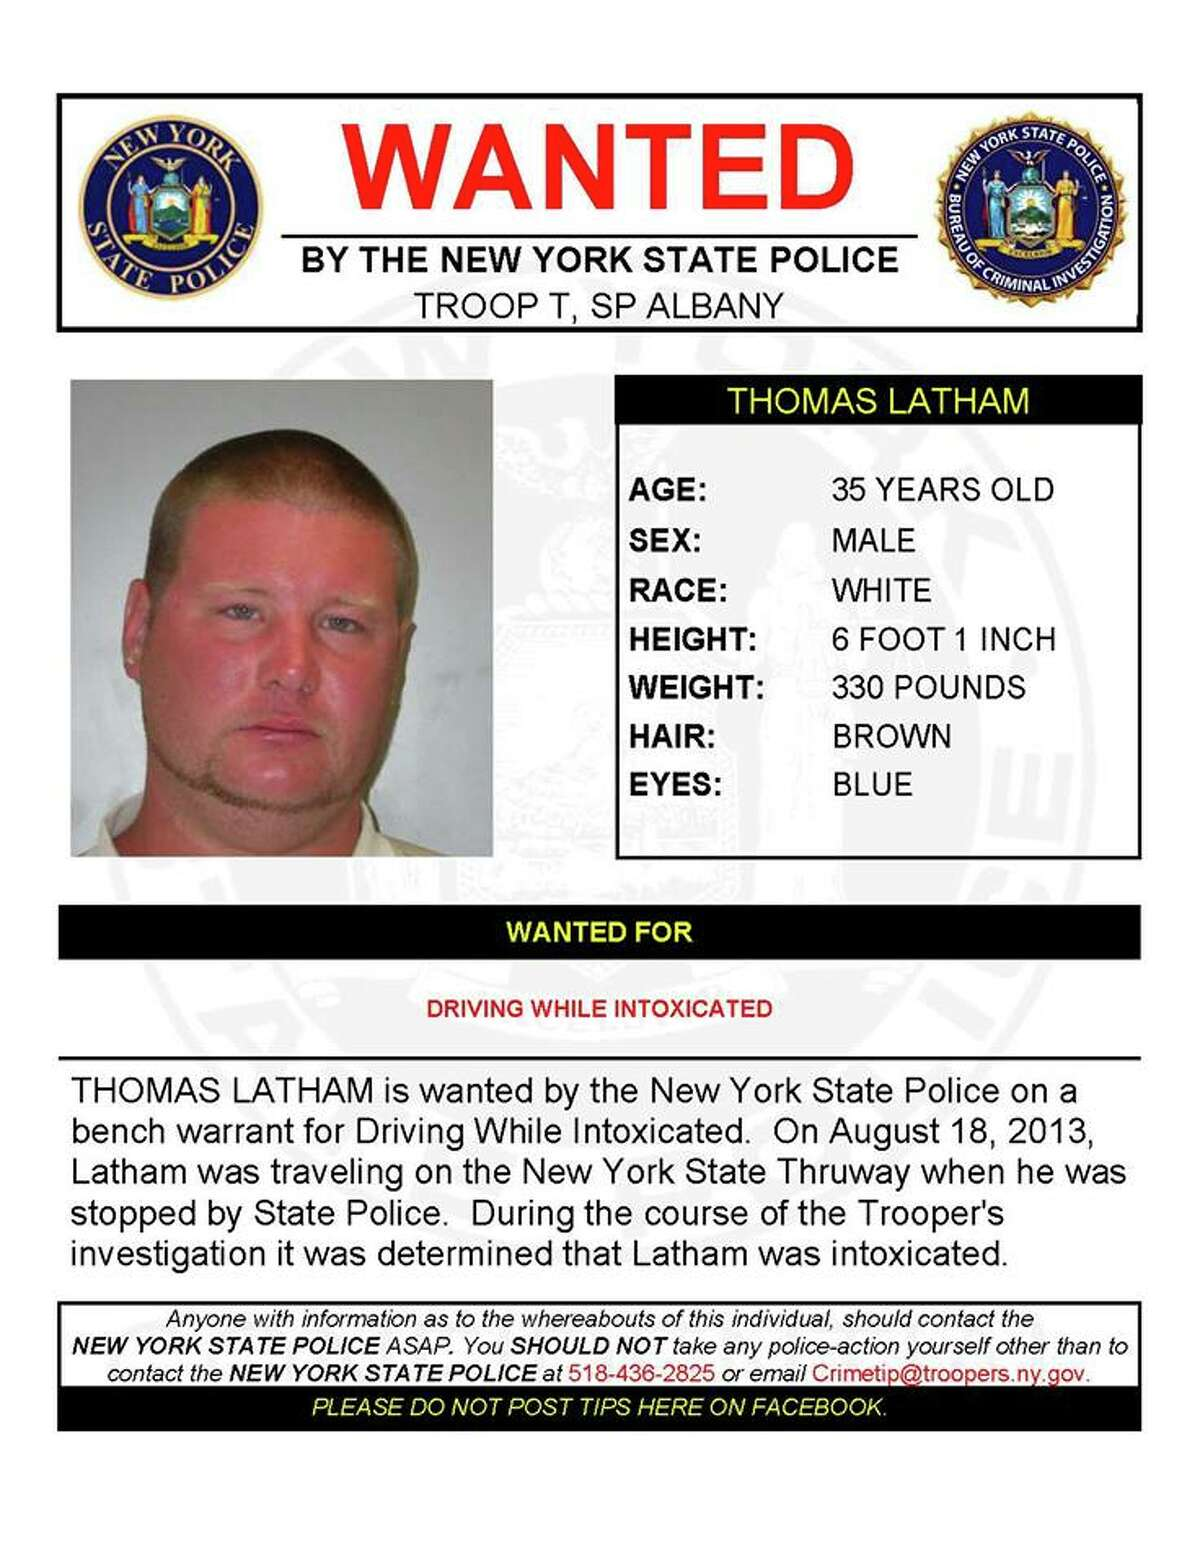 Thomas Latham, 35, is wanted by State Police on a bench warrant for driving while intoxicated. On Aug. 18, 2013, Latham was driving on the Thruway when he was stopped by a trooper who determined Latham was intoxicated.